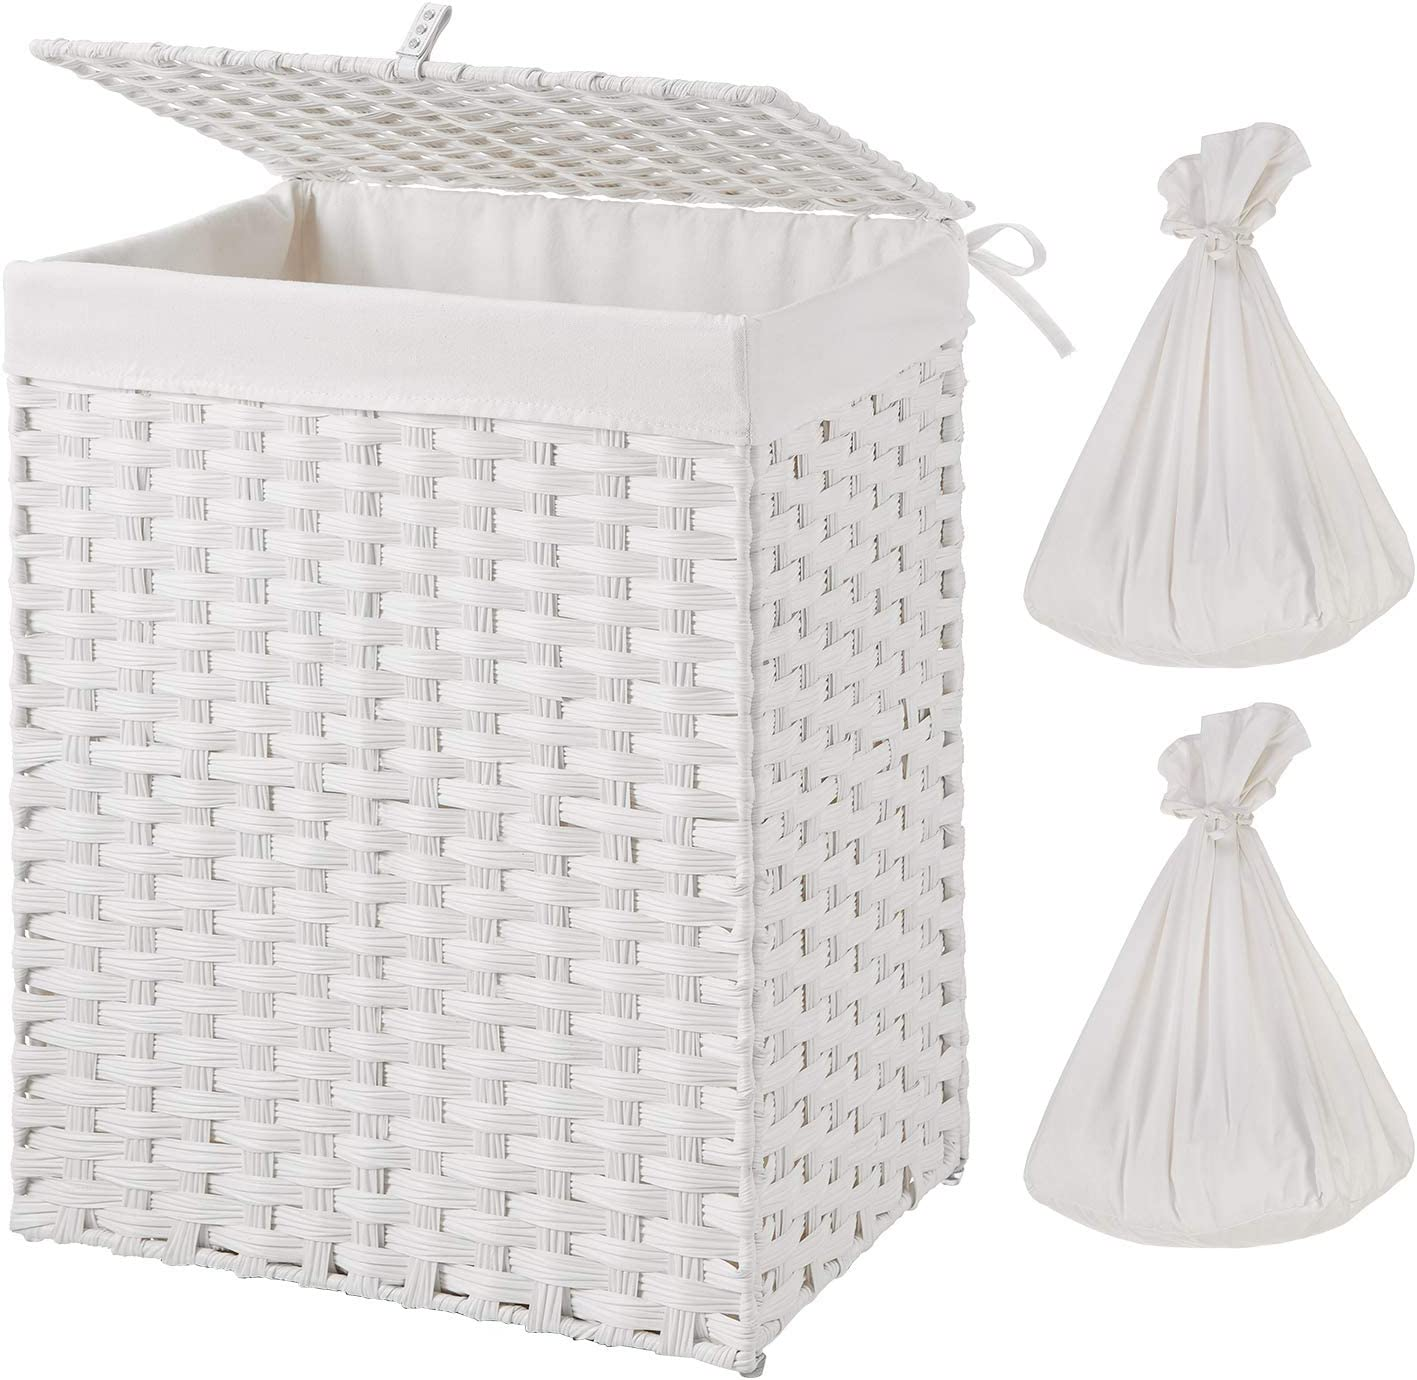 Greenstell Handwoven Laundry Hamper with 2 Removable Liner Bag, Synthetic Rattan Laundry Basket with Lid and Handles, Foldable and Easy to Install White (Standard Size)